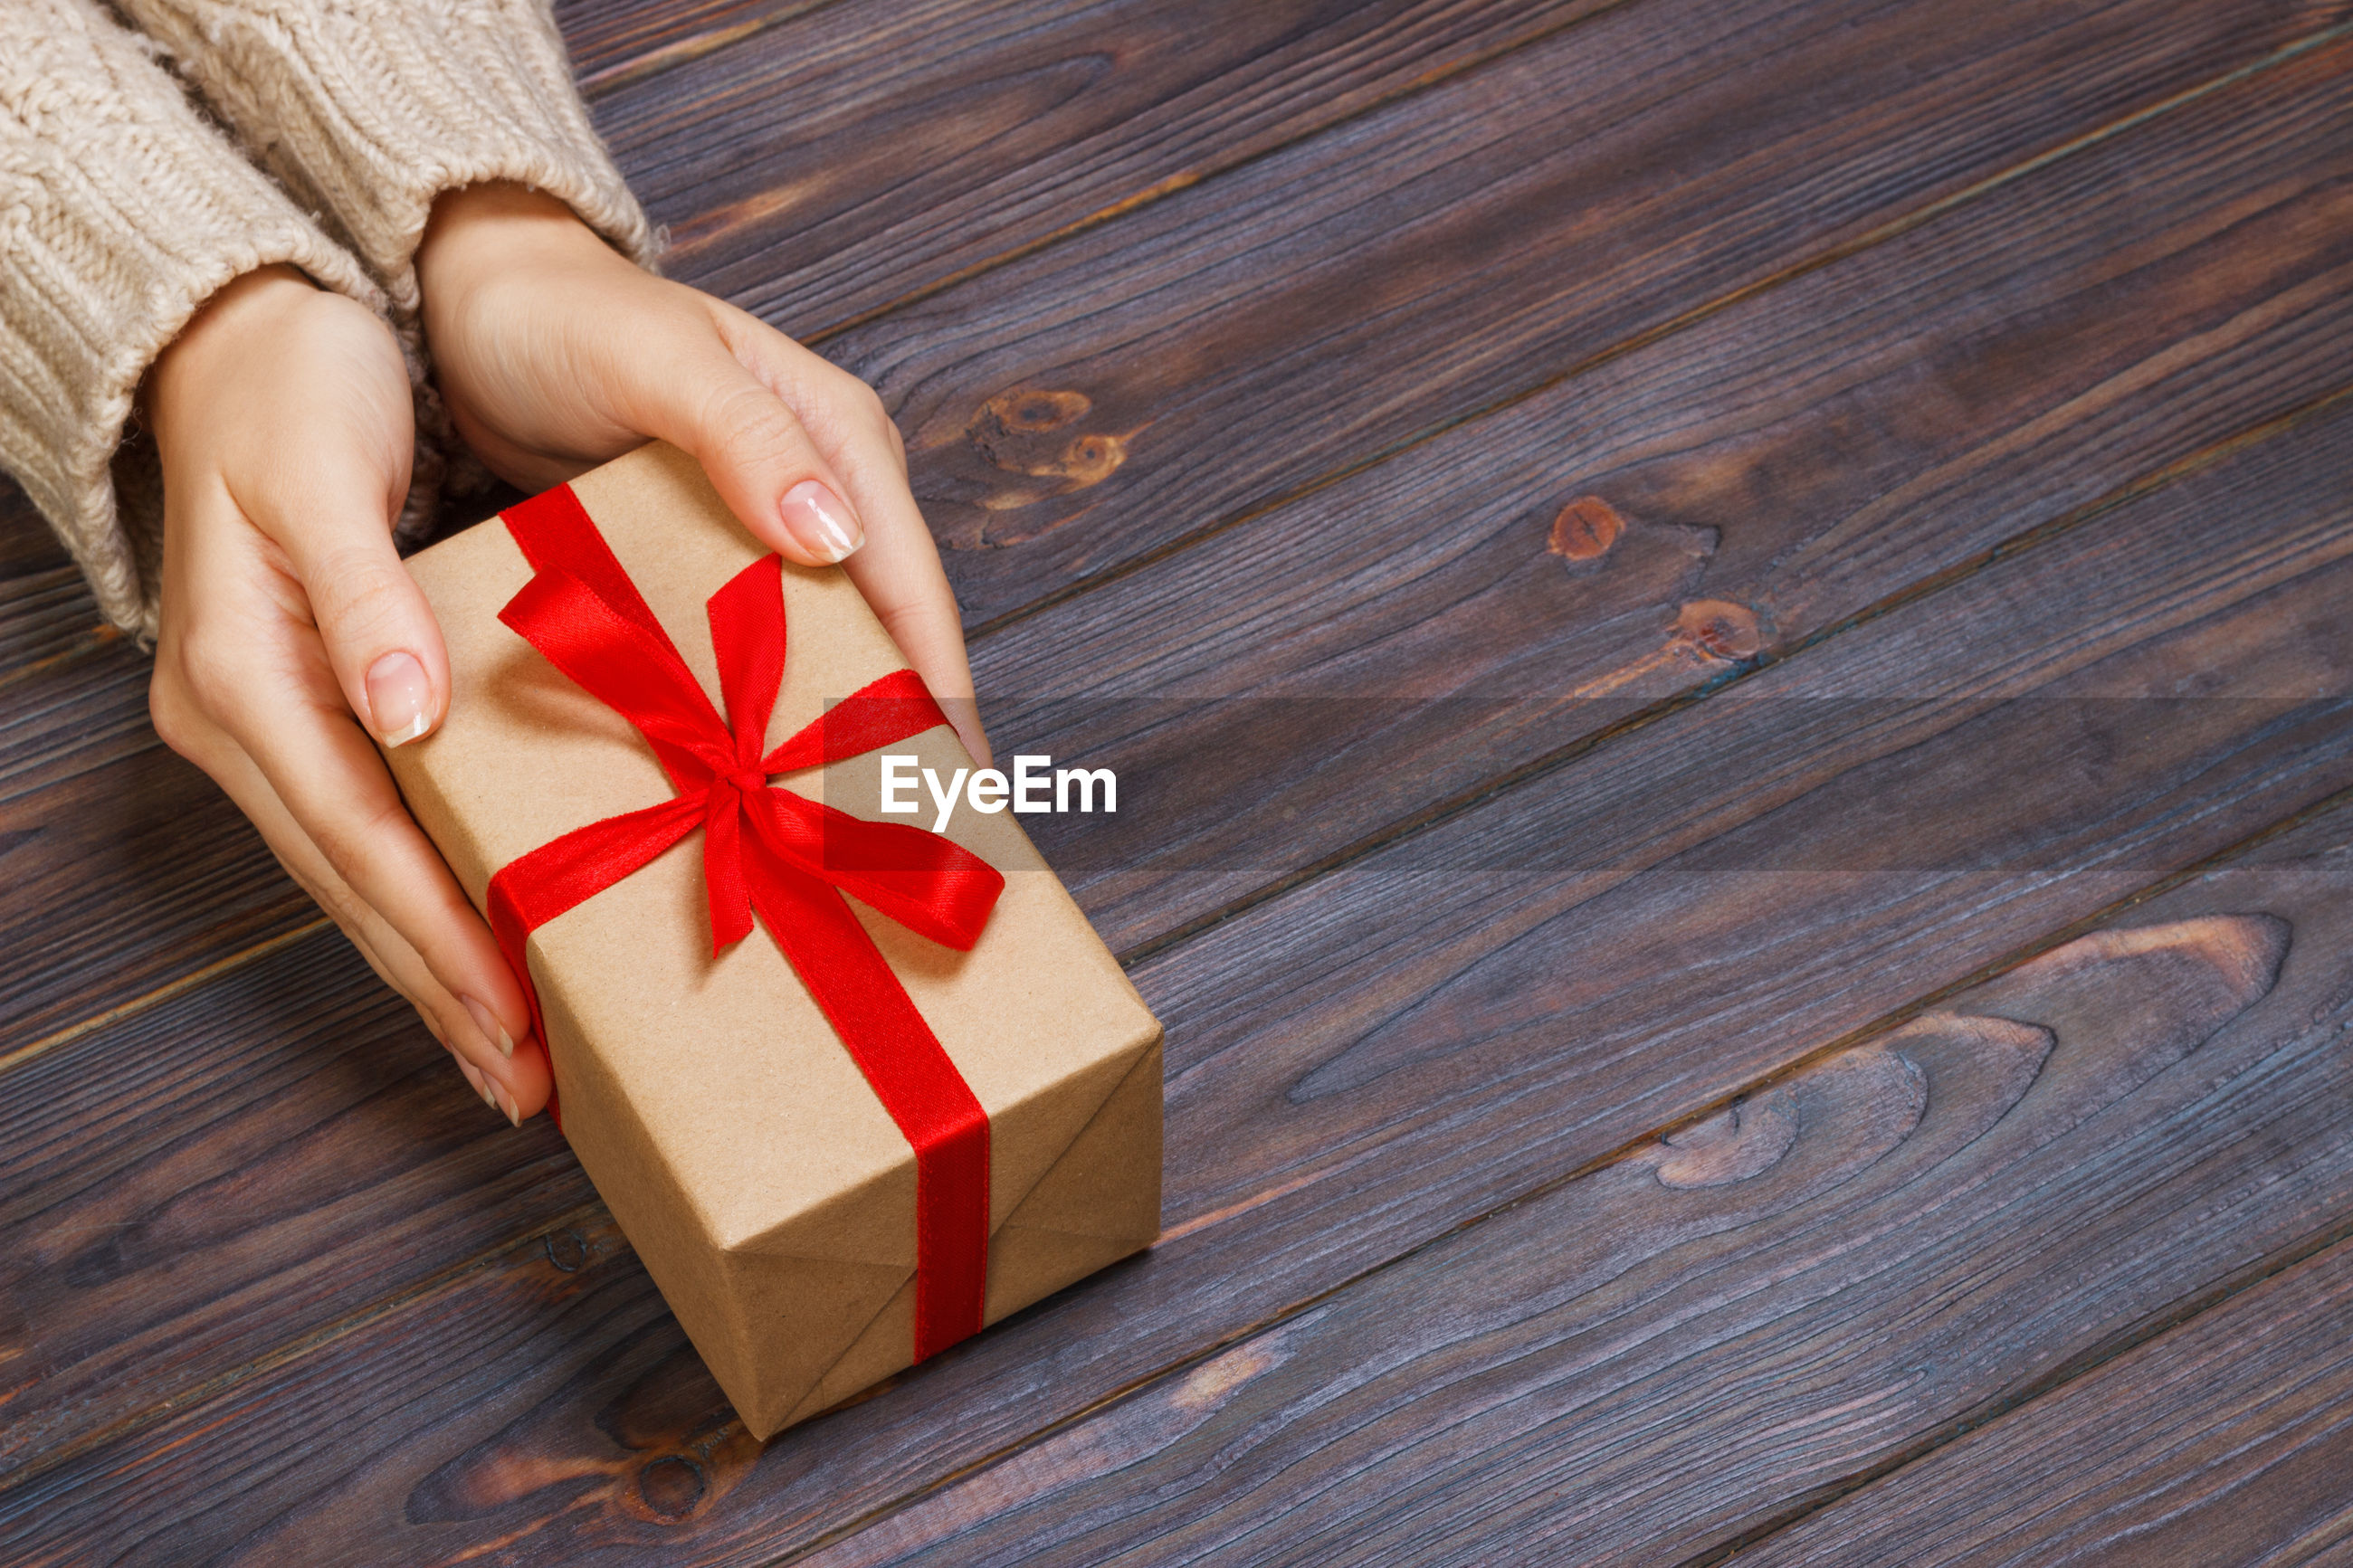 Cropped hands of woman holding gift box on wooden table